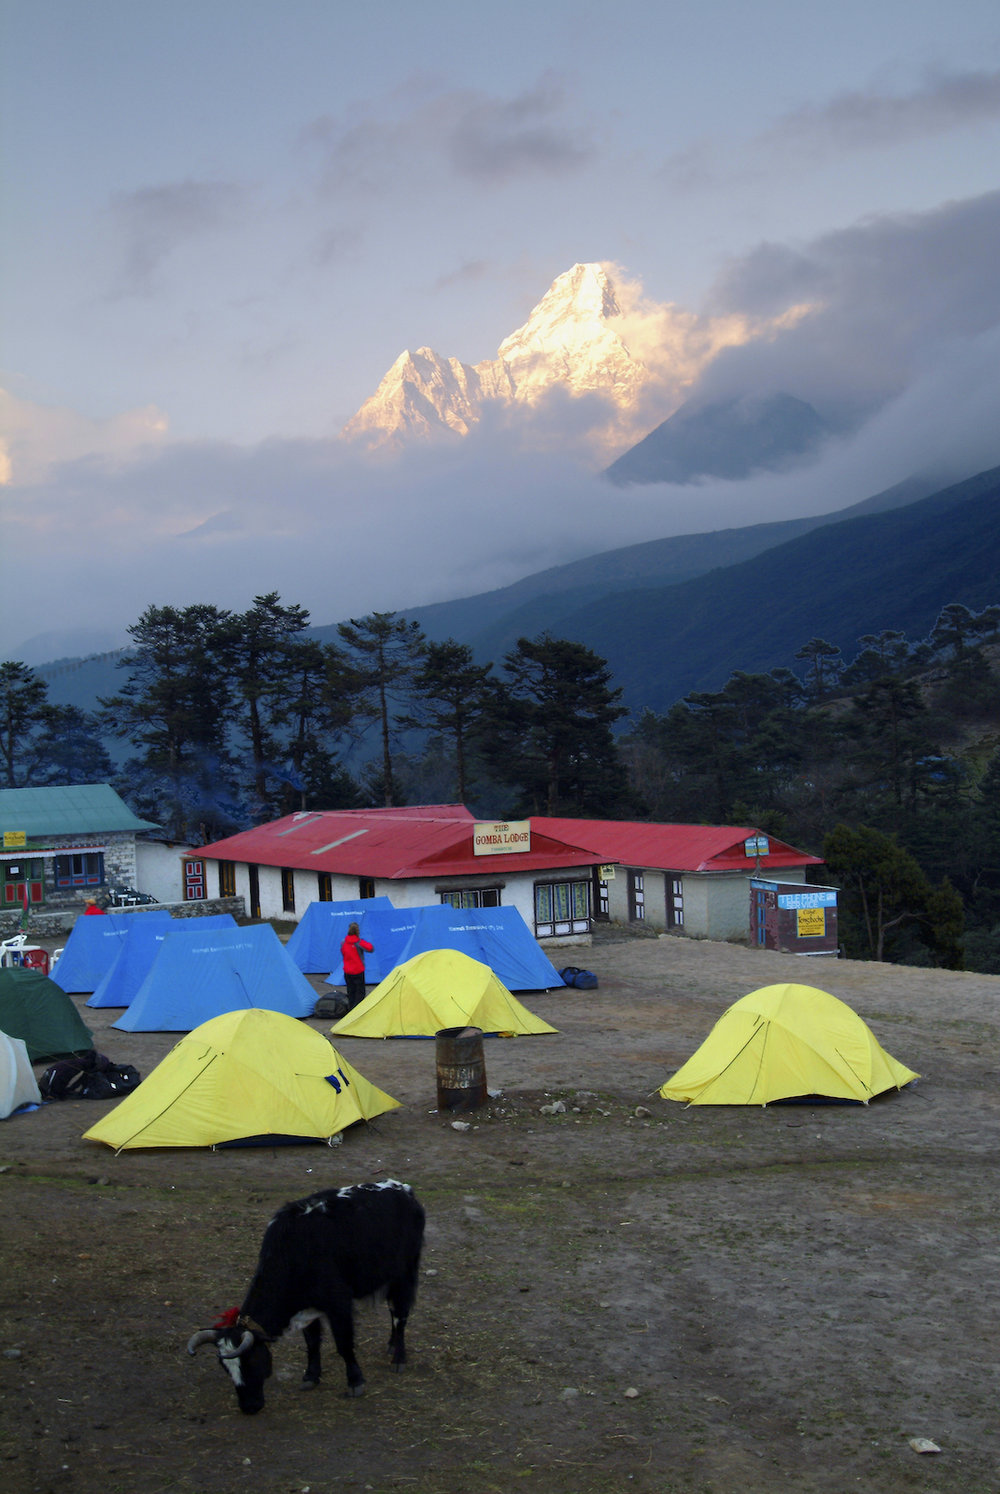 tents at Tengboche Monastery in the Nepal Himalays.  Image by New Orleans based travel photographer, Marc Pagani - marcpagani.com